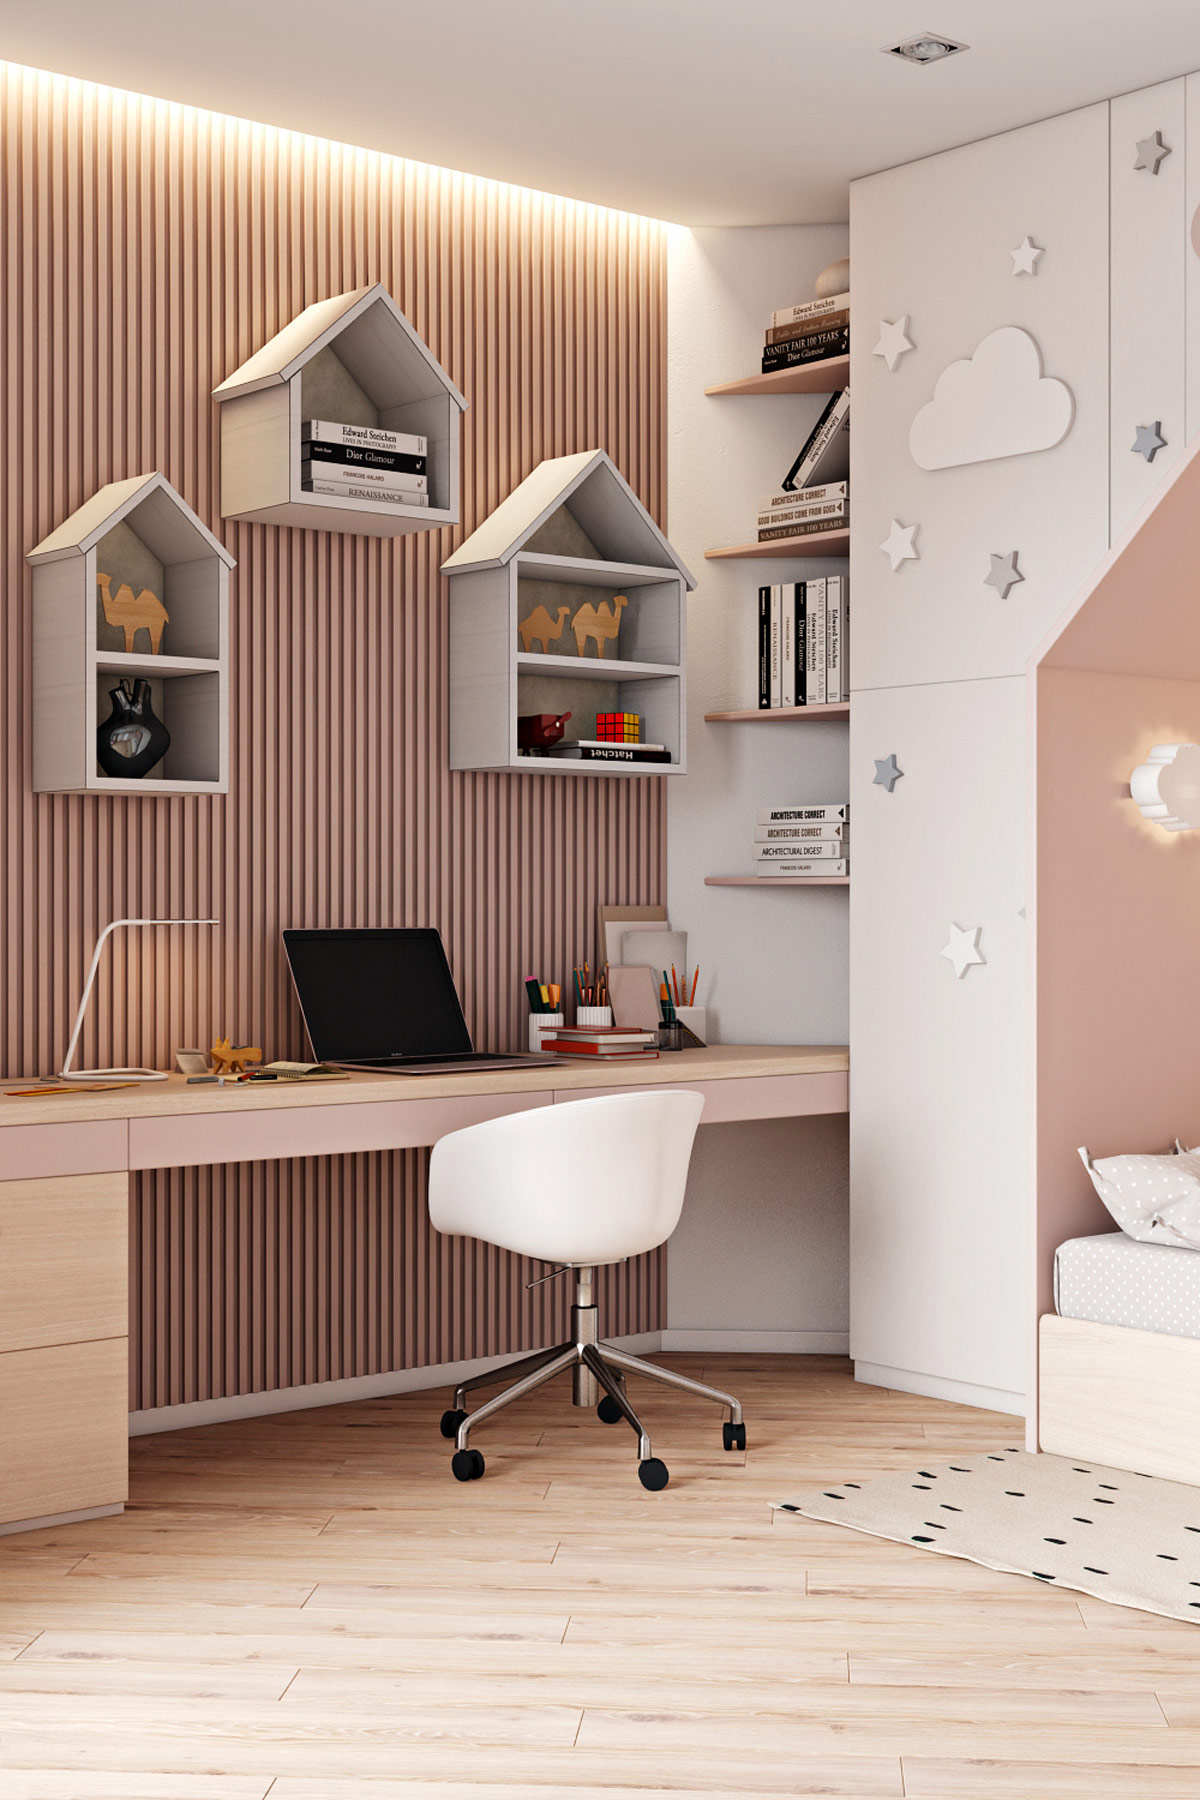 creative-kids-workspace-bedroom-design-with-house-shaped-shelves-and-pink-decor